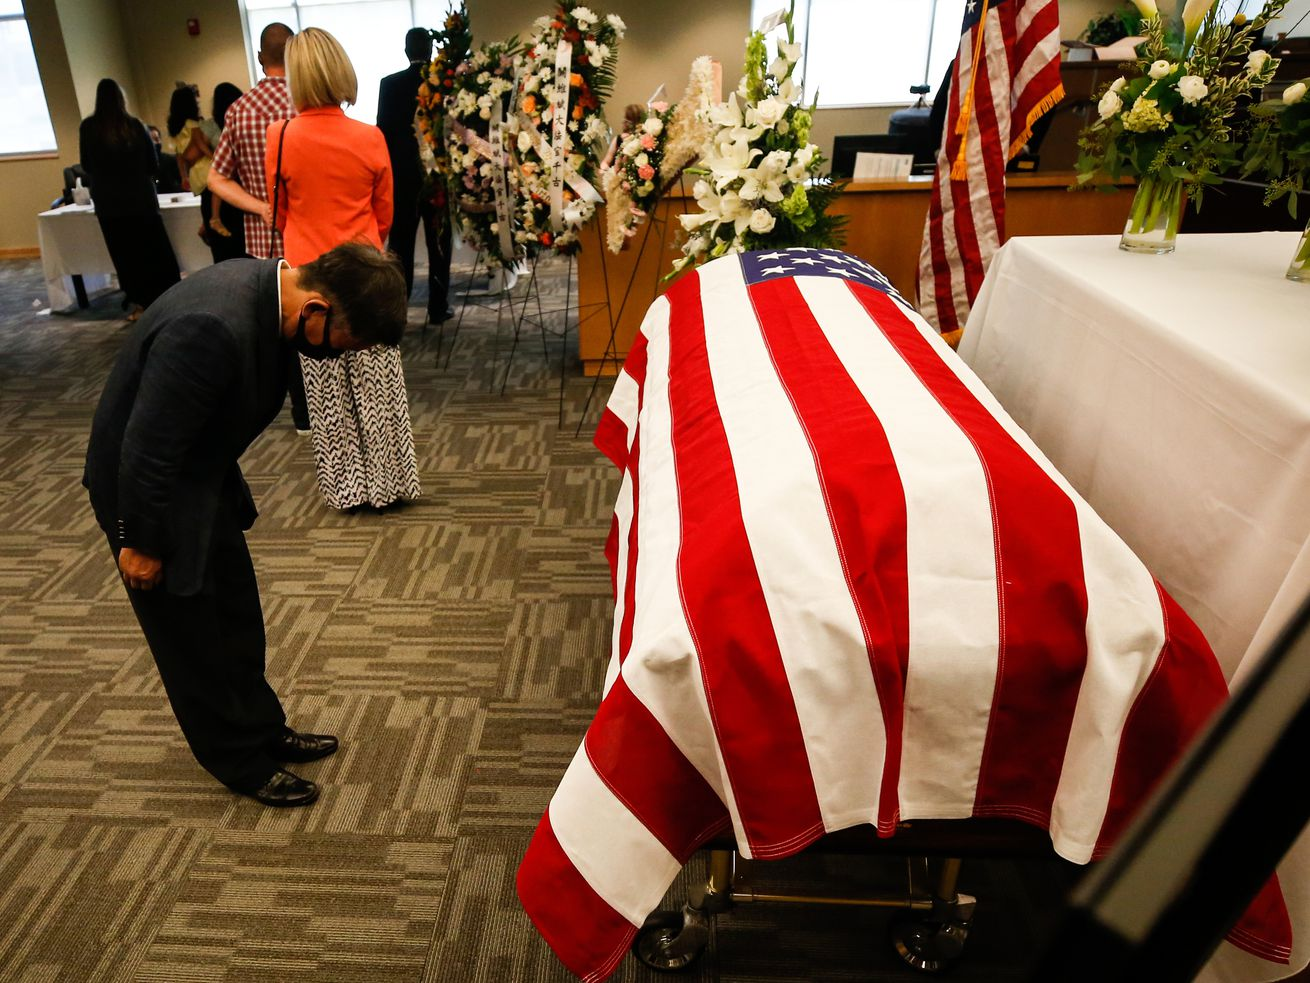 A man bows to the coffin to pay his last respects to Judge Michael Kwan at Taylorsville City Hall in Taylorsville on Friday, July 31, 2020. Kwan died July 21.